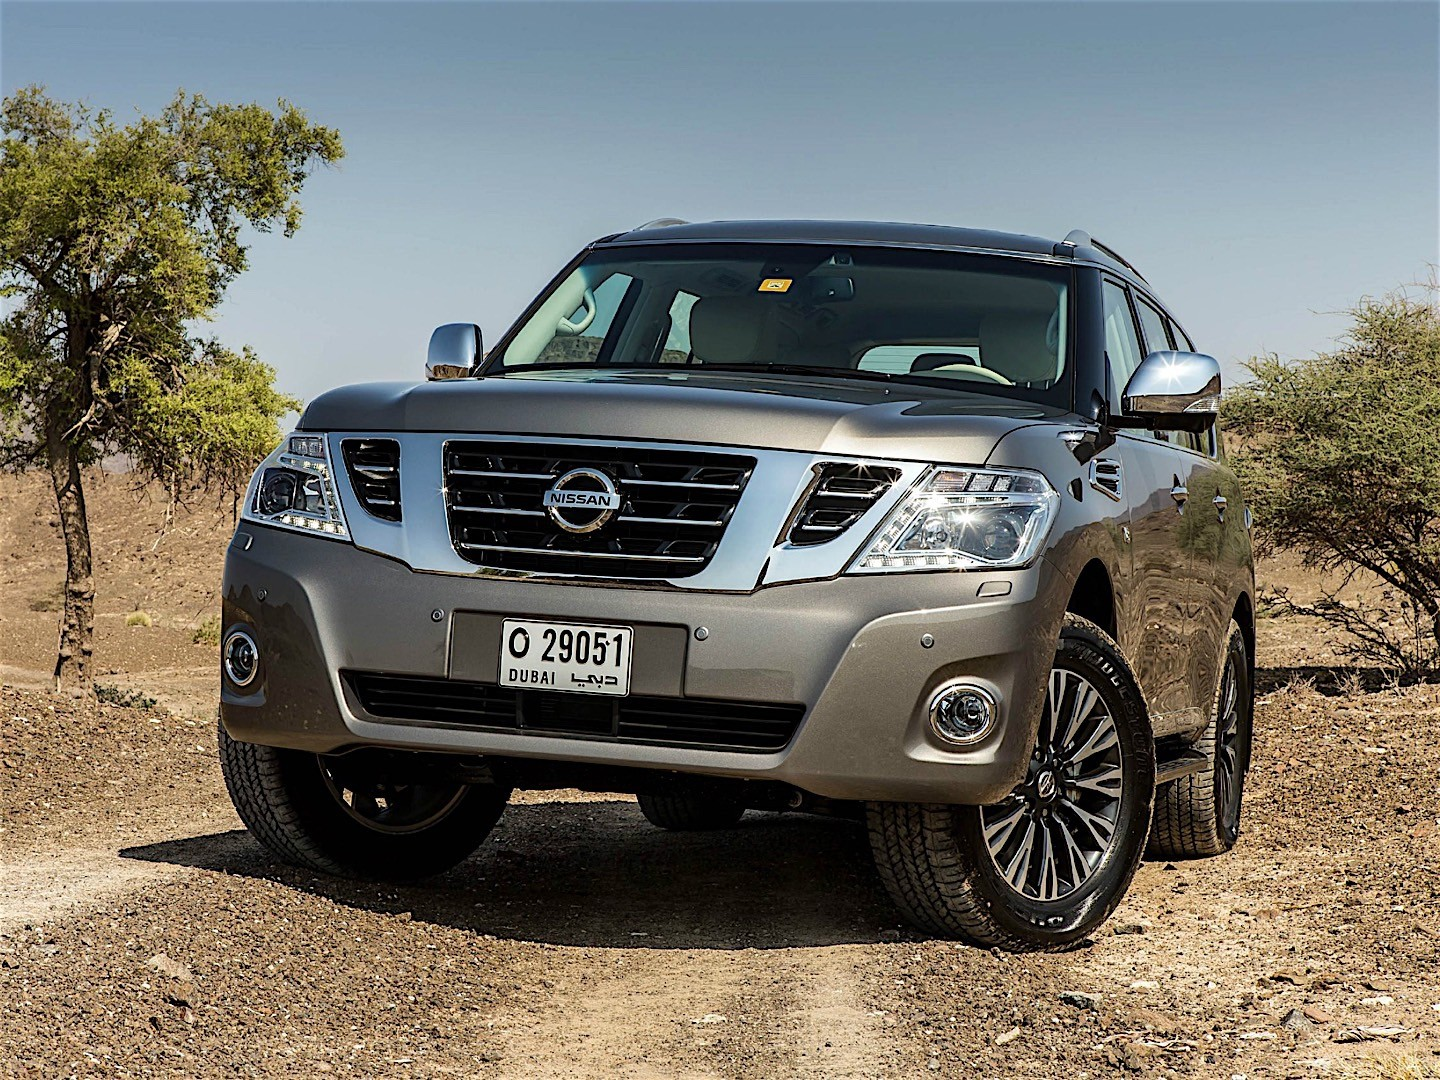 nissan patrol specs photos 2014 2015 2016 2017 2018 2019 autoevolution. Black Bedroom Furniture Sets. Home Design Ideas